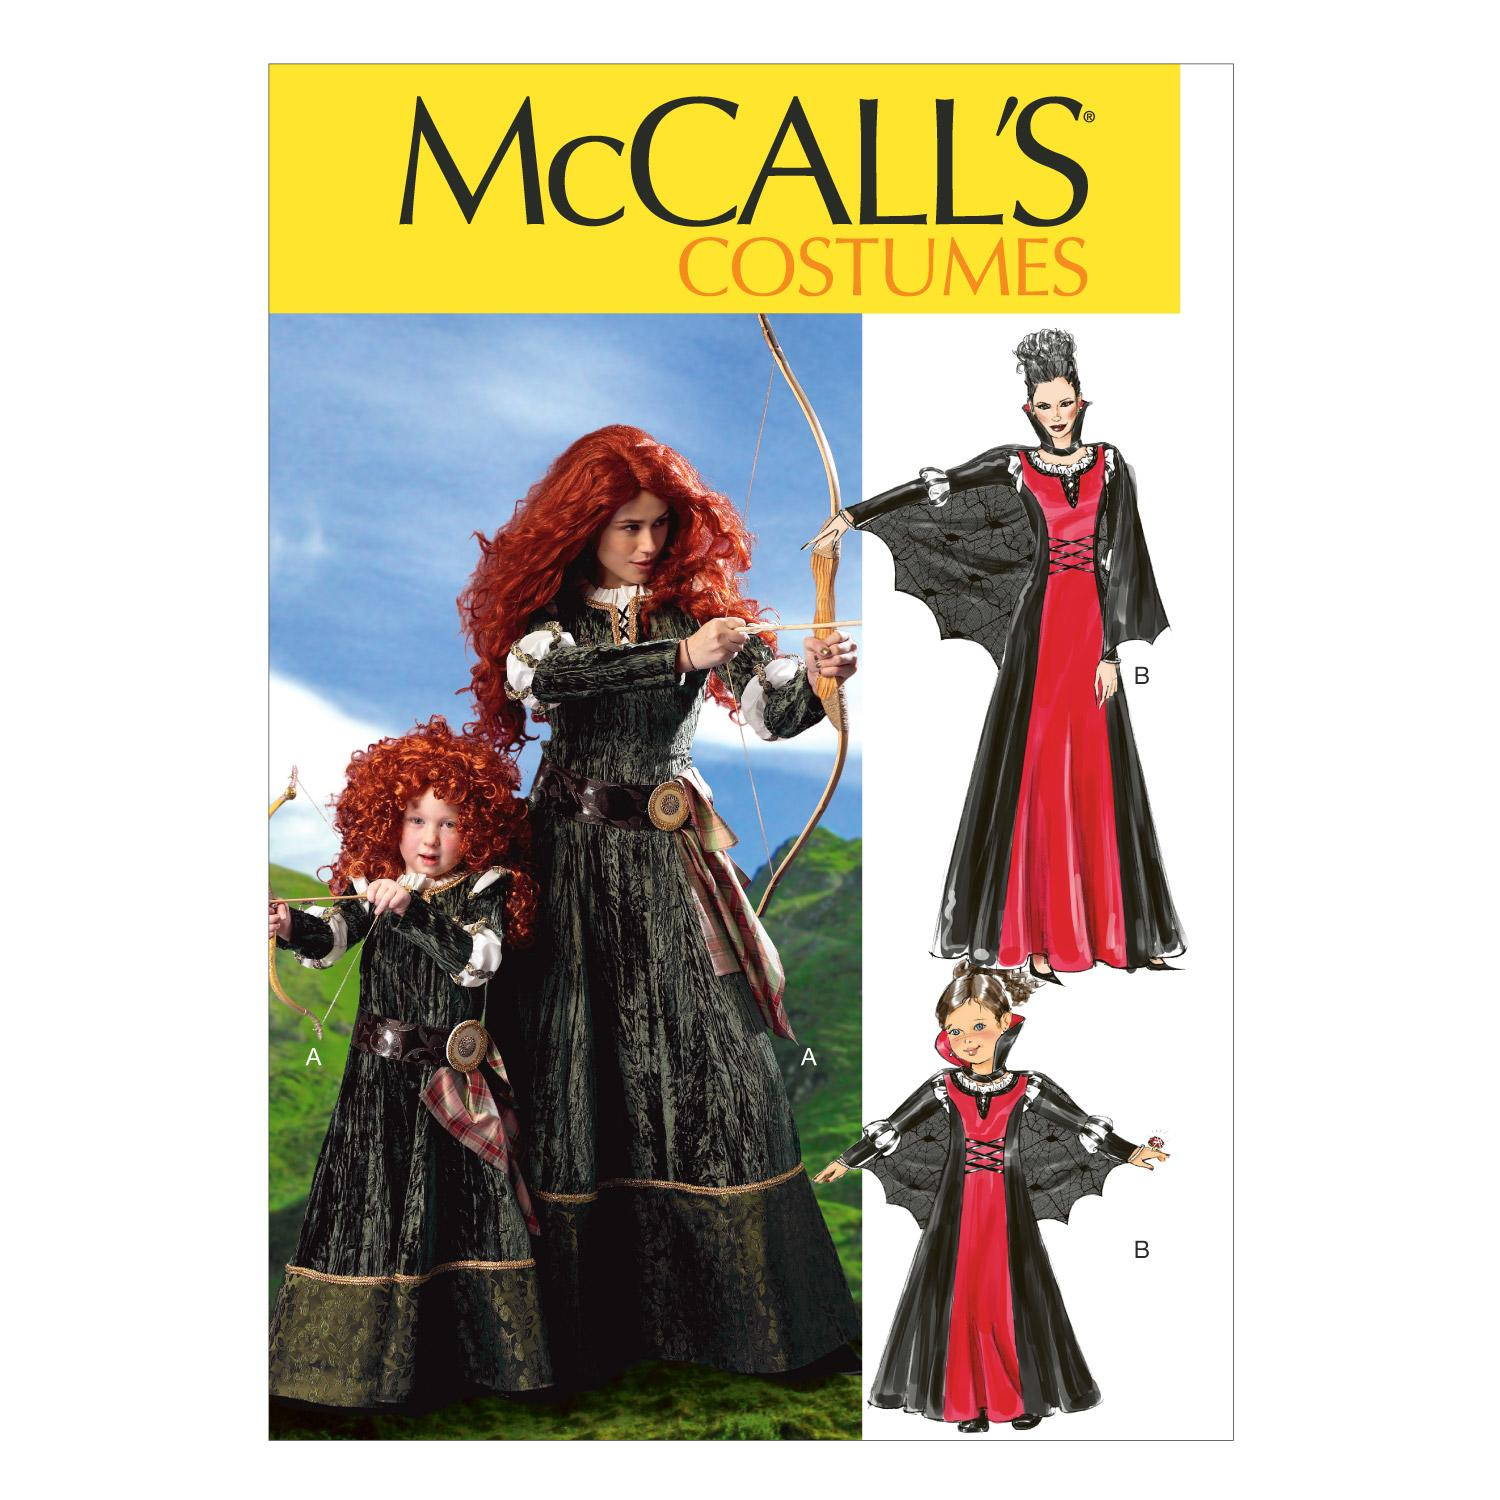 McCalls M6817 Costumes, Dresses, Halloween